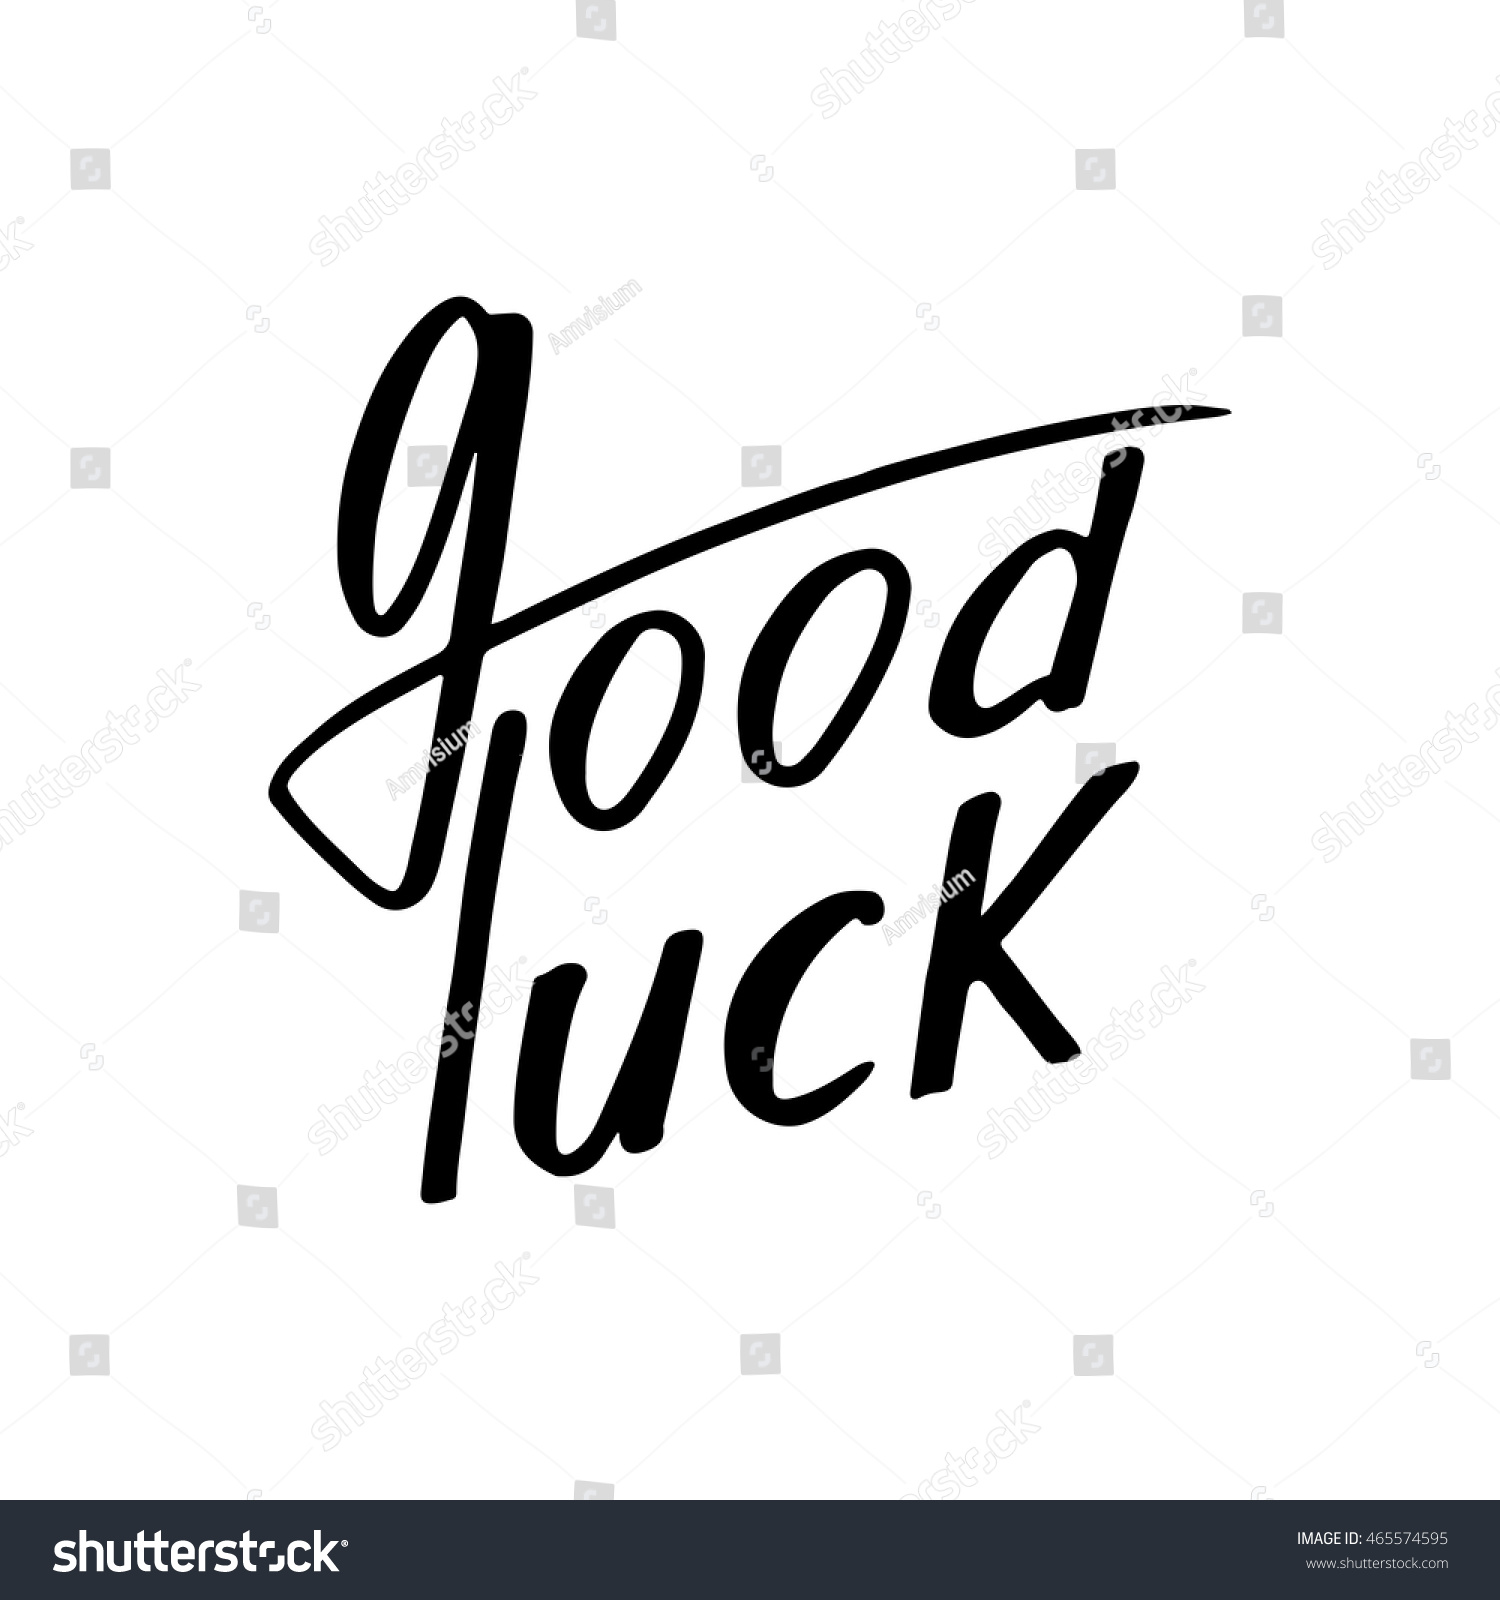 Good luck greeting card hand drawn stock vector 465574595 good luck greeting card with hand drawn calligraphy letters for creativity concepts and ideas of a kristyandbryce Images